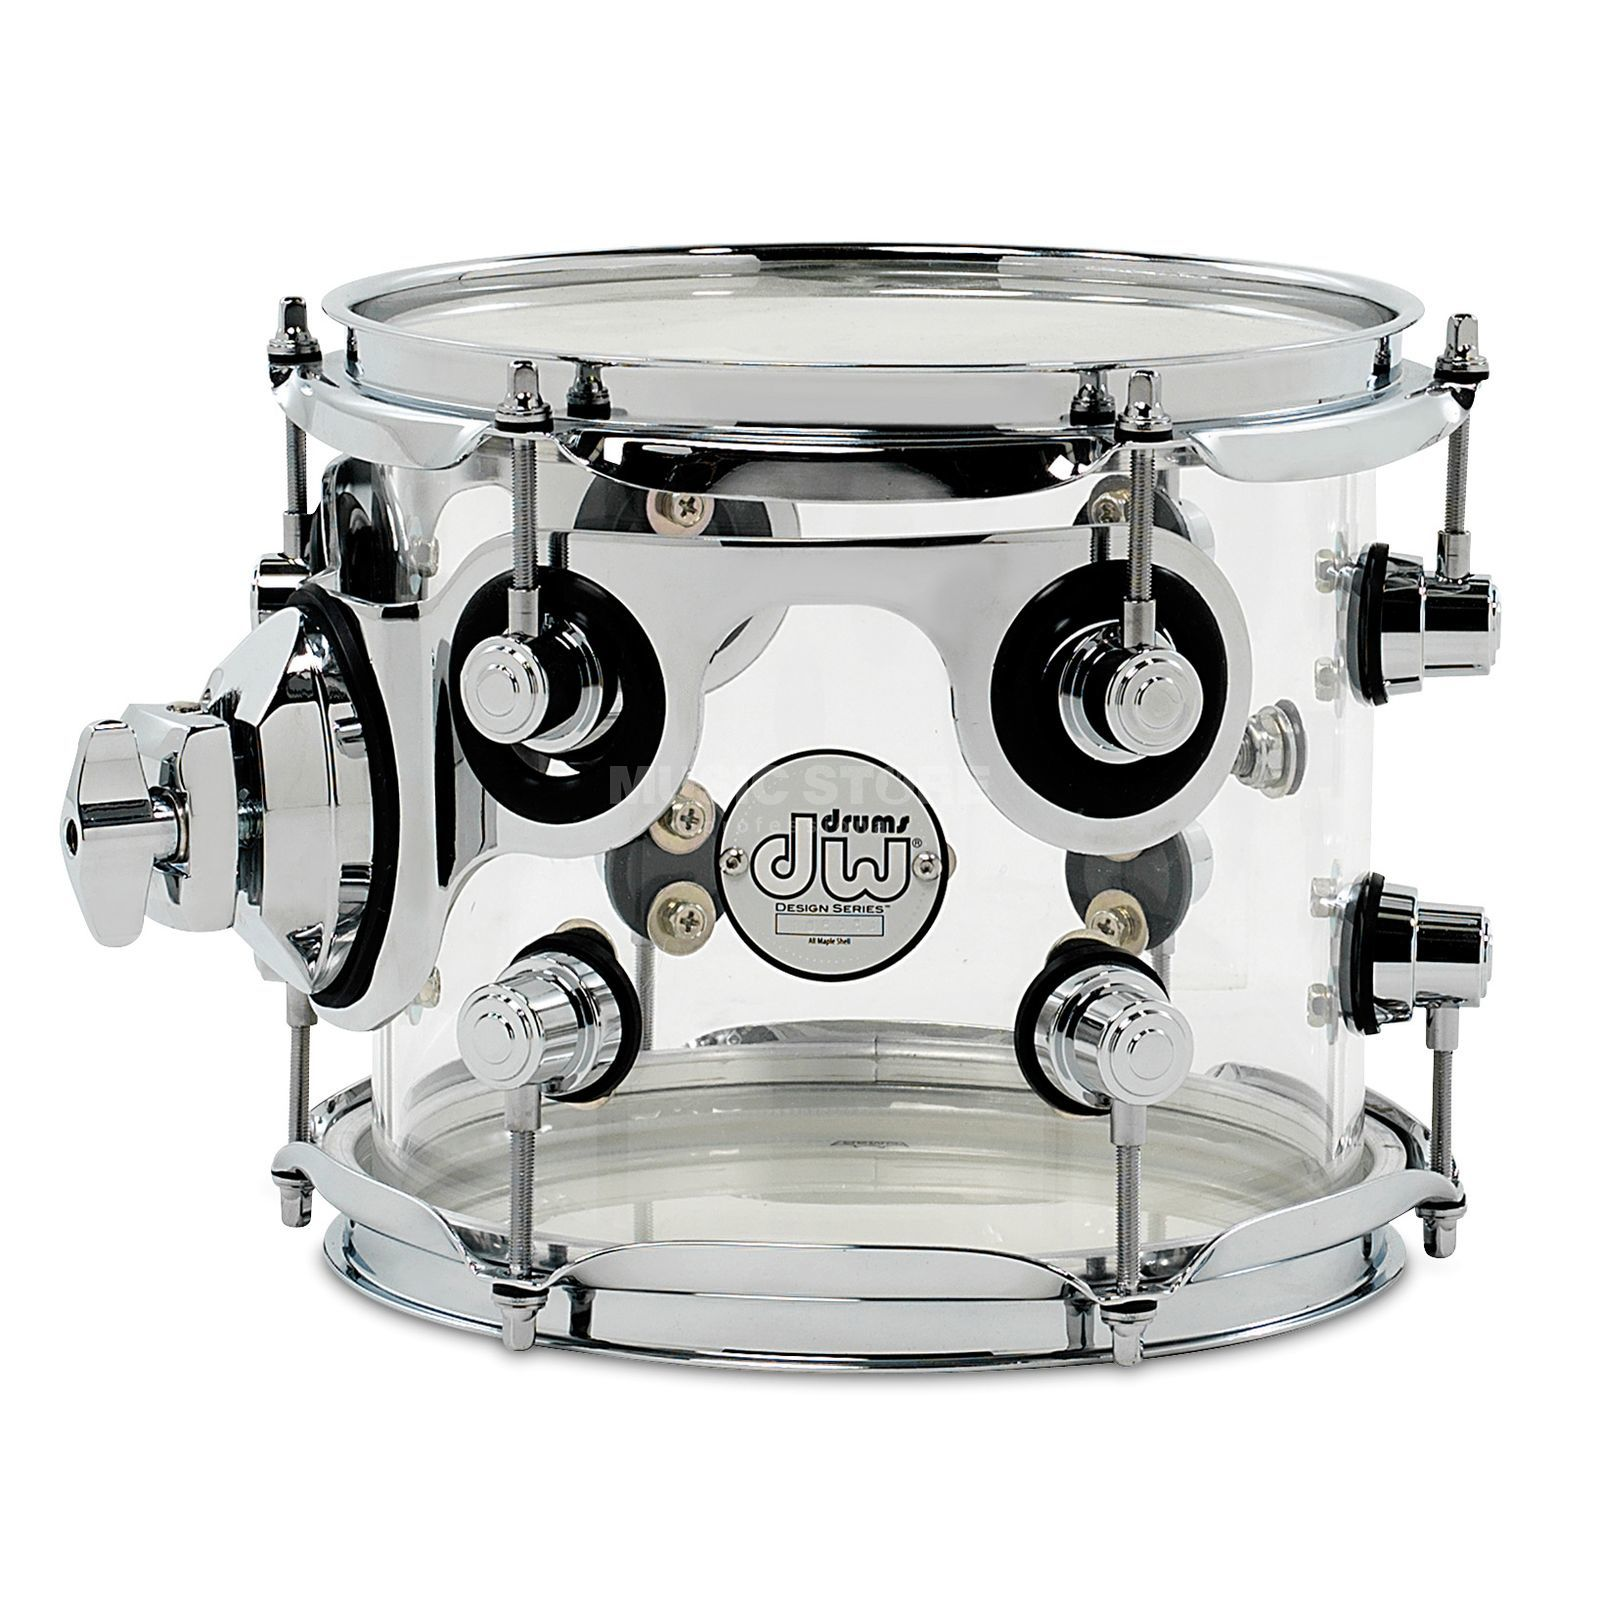 "Drum Workshop Design Acryl Tom 8""x7"", Clear Produktbillede"